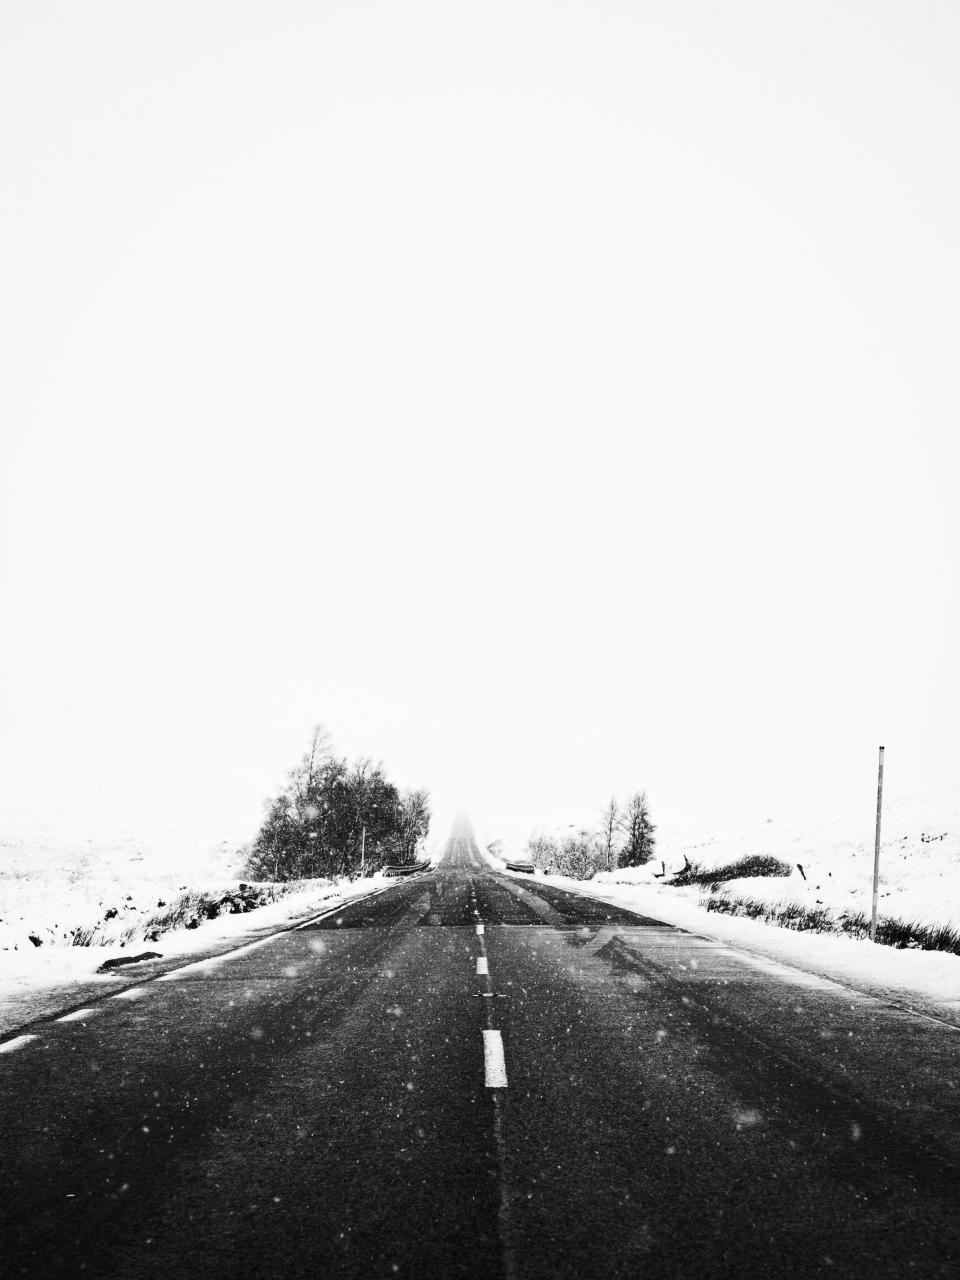 snow, winter, white, cold, weather, ice, trees, plants, nature, road, street, travel, adventure, black and white, monochrome